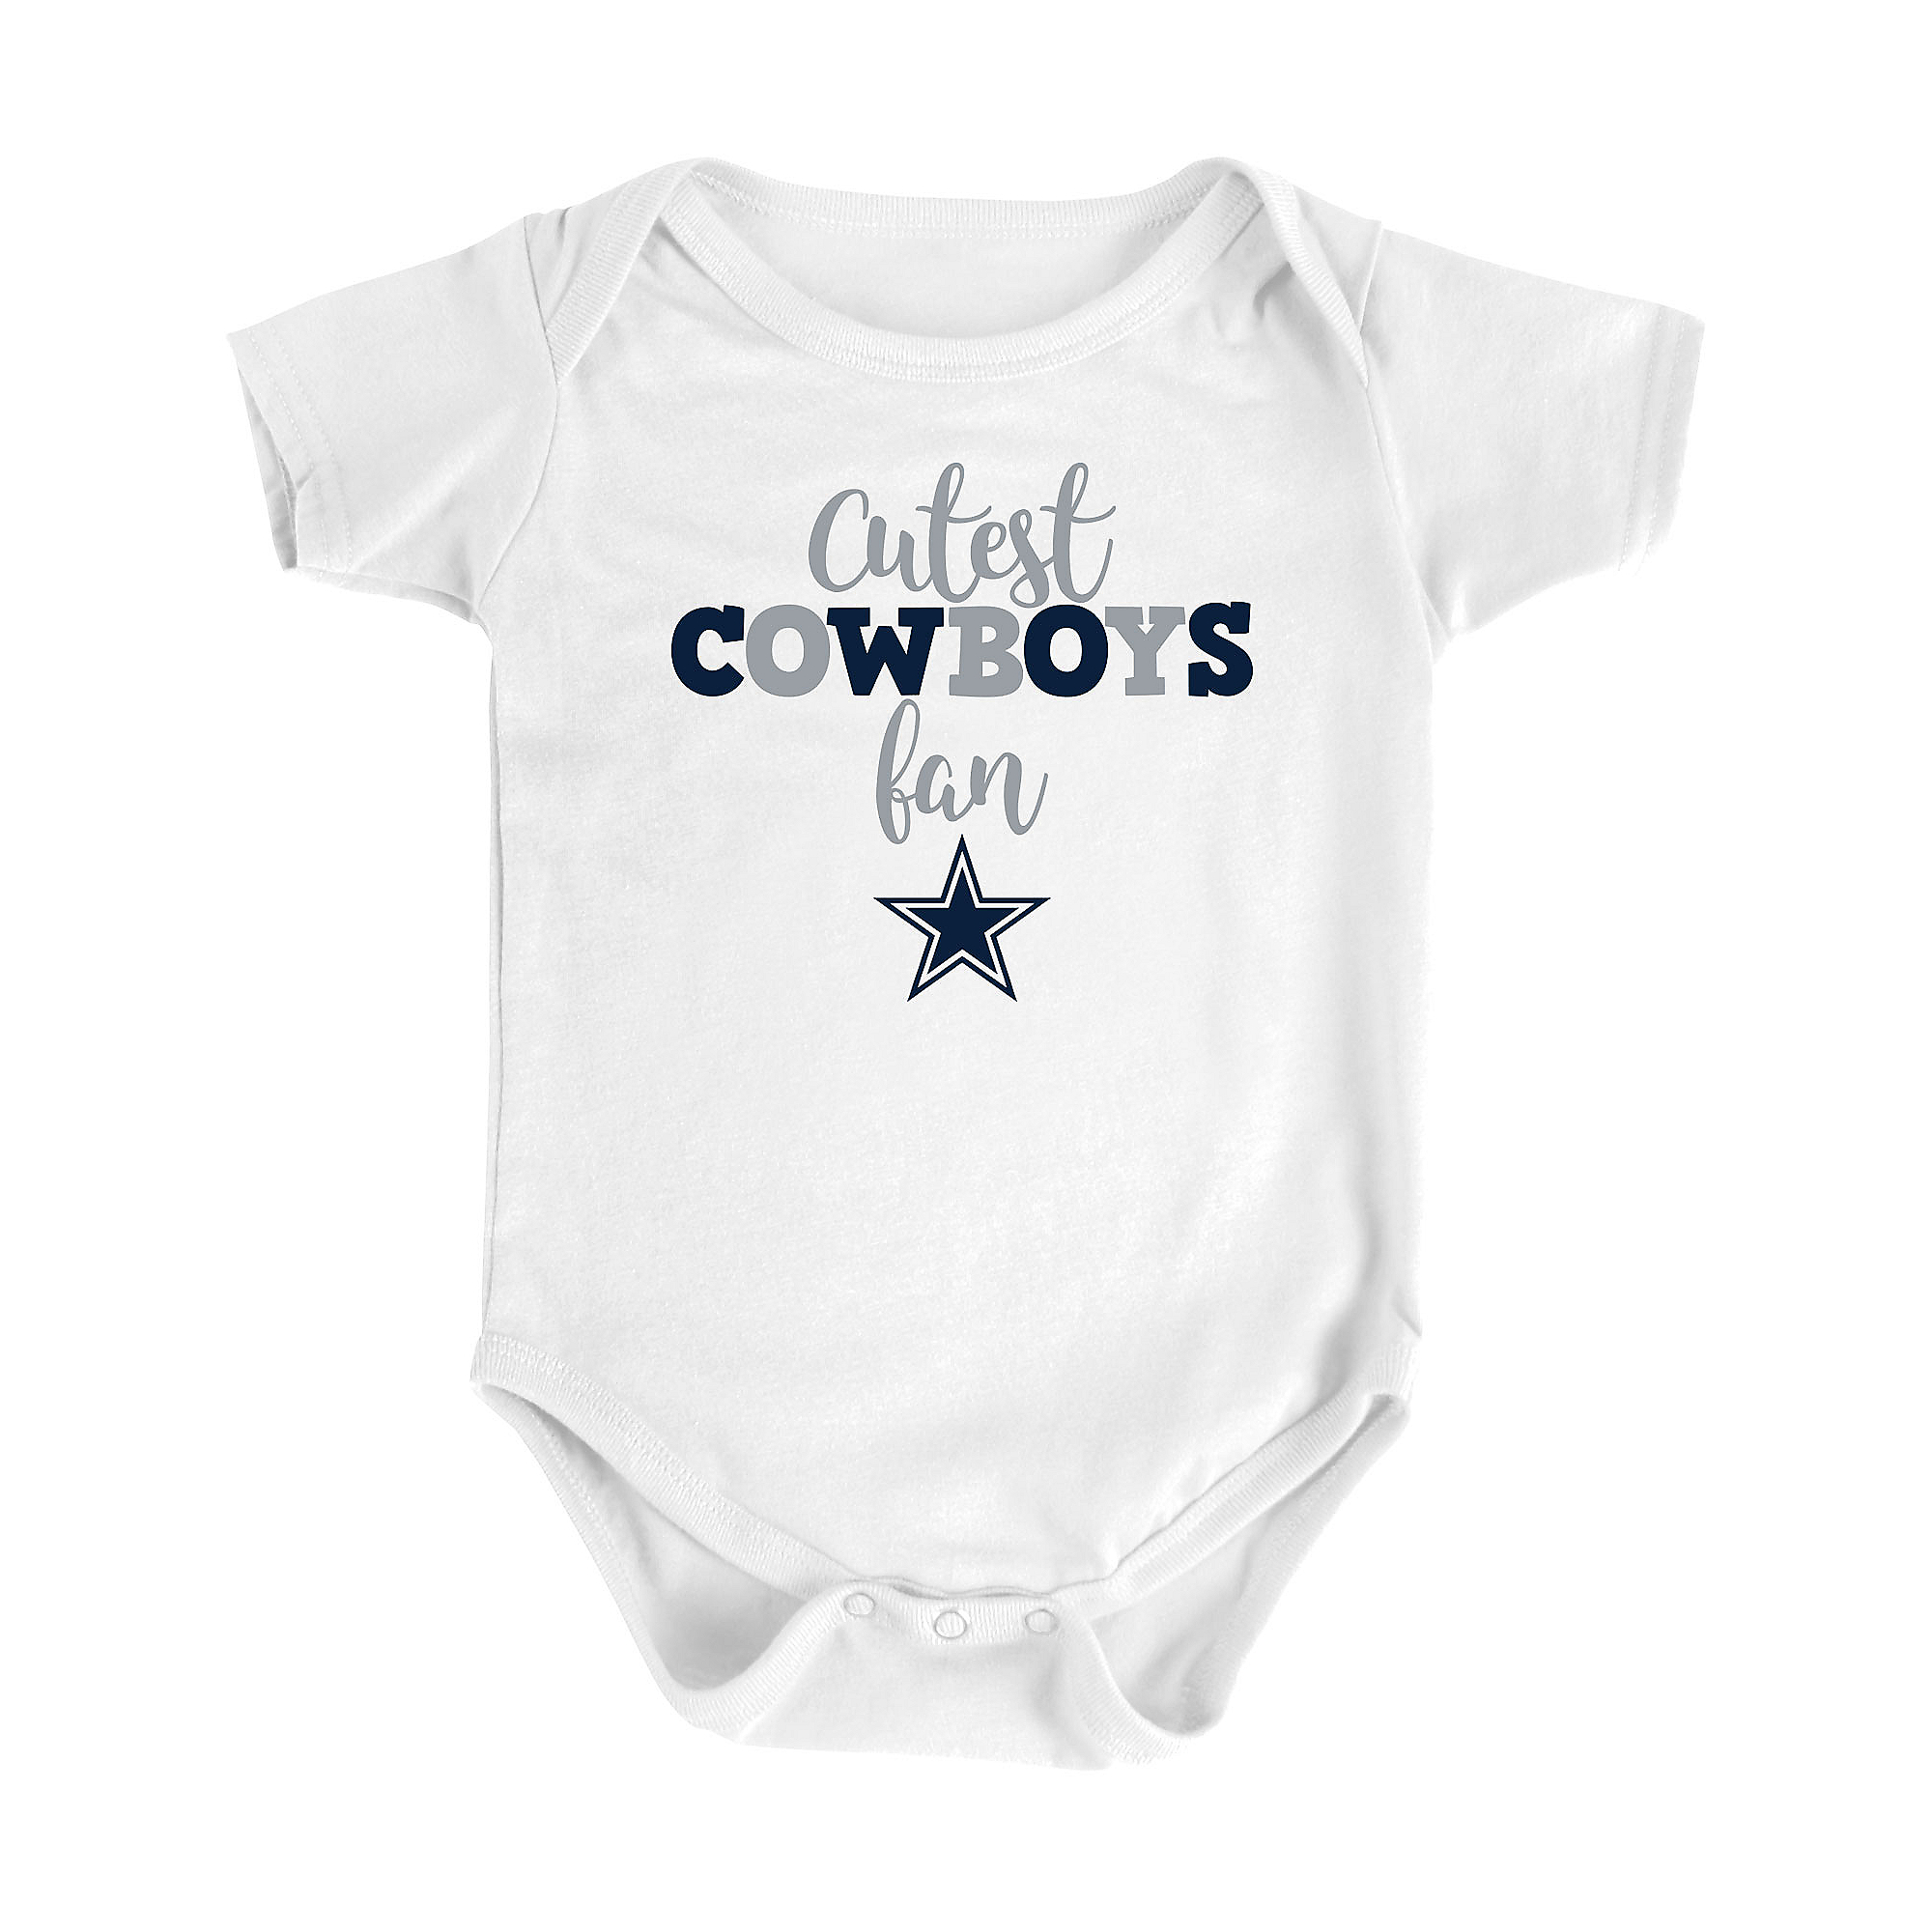 Dallas Cowboys Infant Cutest Cowboy Bodysuit